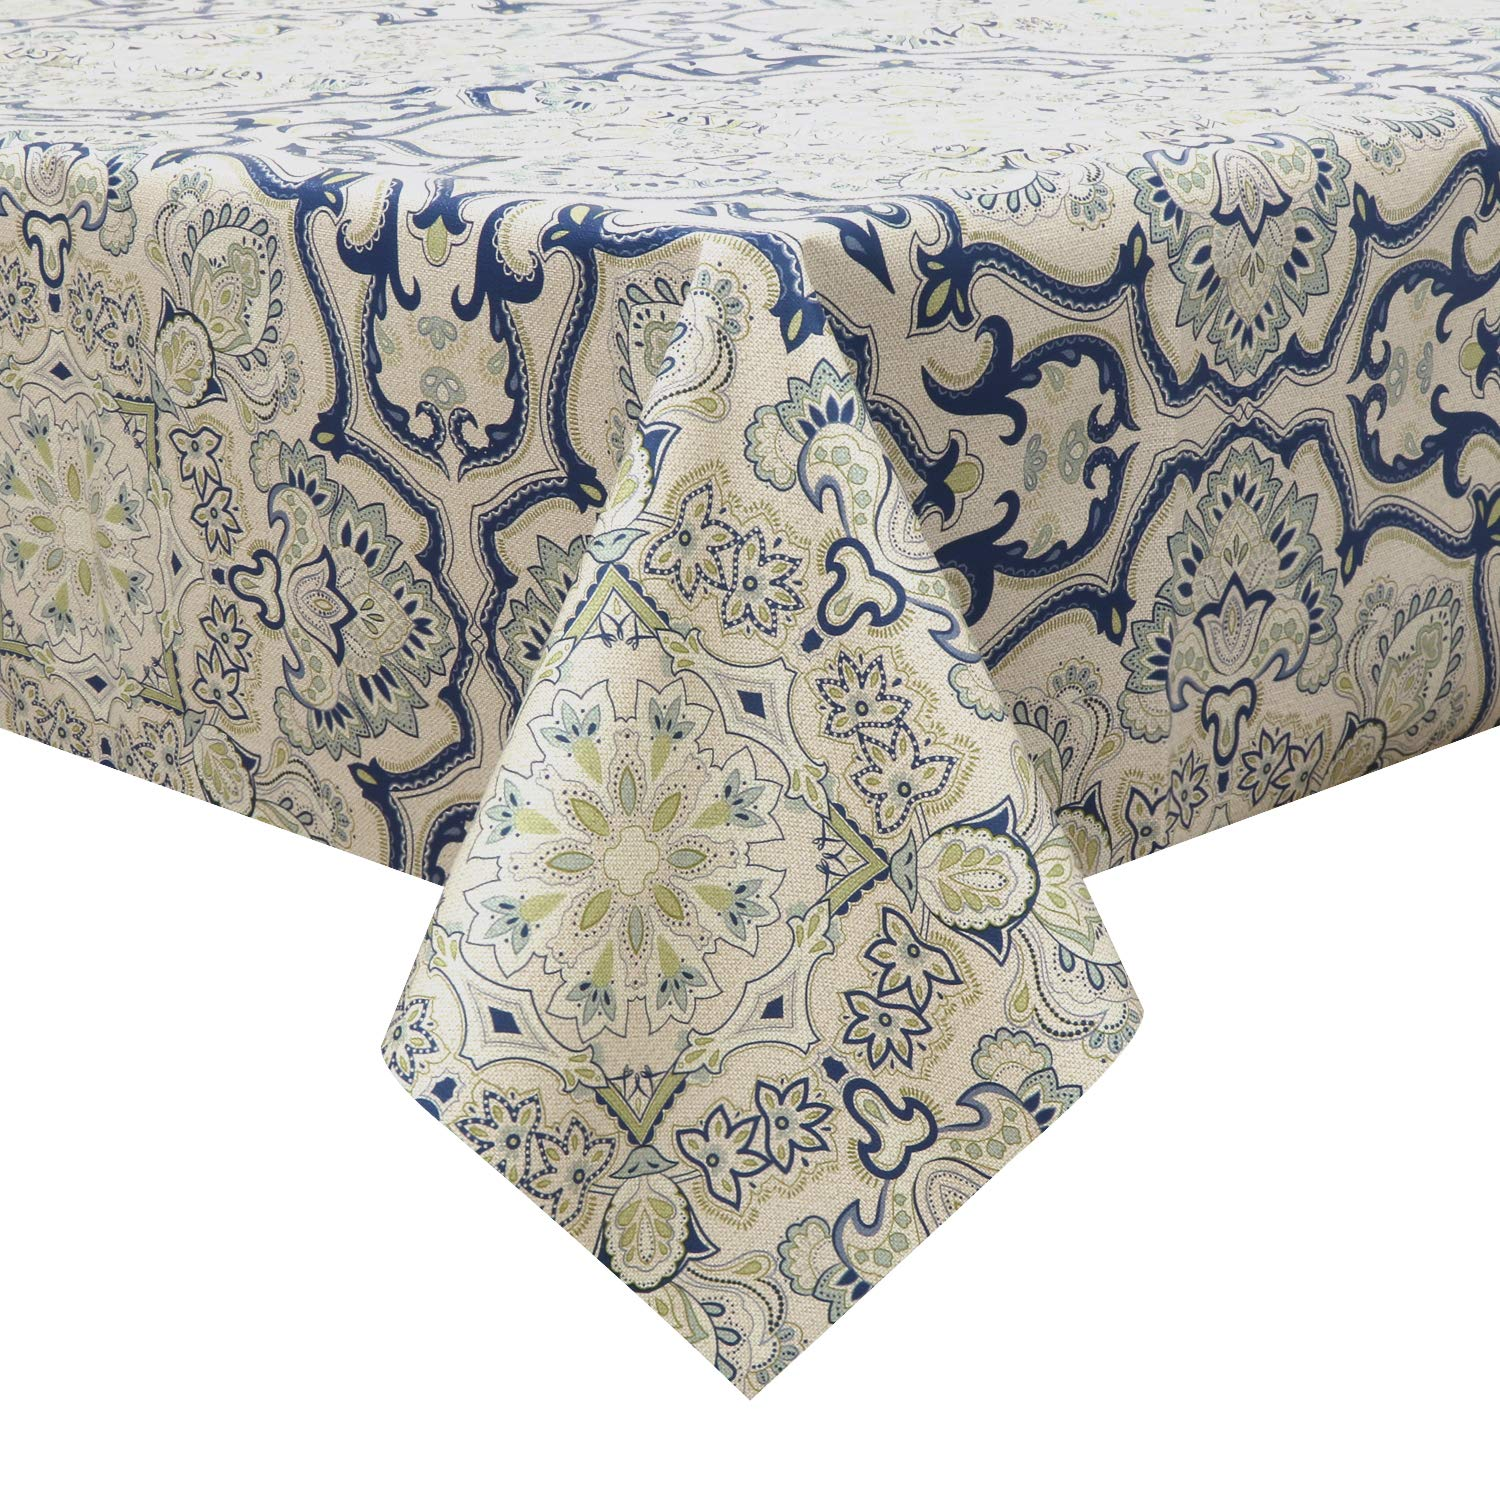 LEEVAN Heavy Weight Vinyl Square Table Cover Wipe Clean PVC Tablecloth Oil-Proof Waterproof Stain-Resistant-54 x 72 Inch (Blue Bluish)